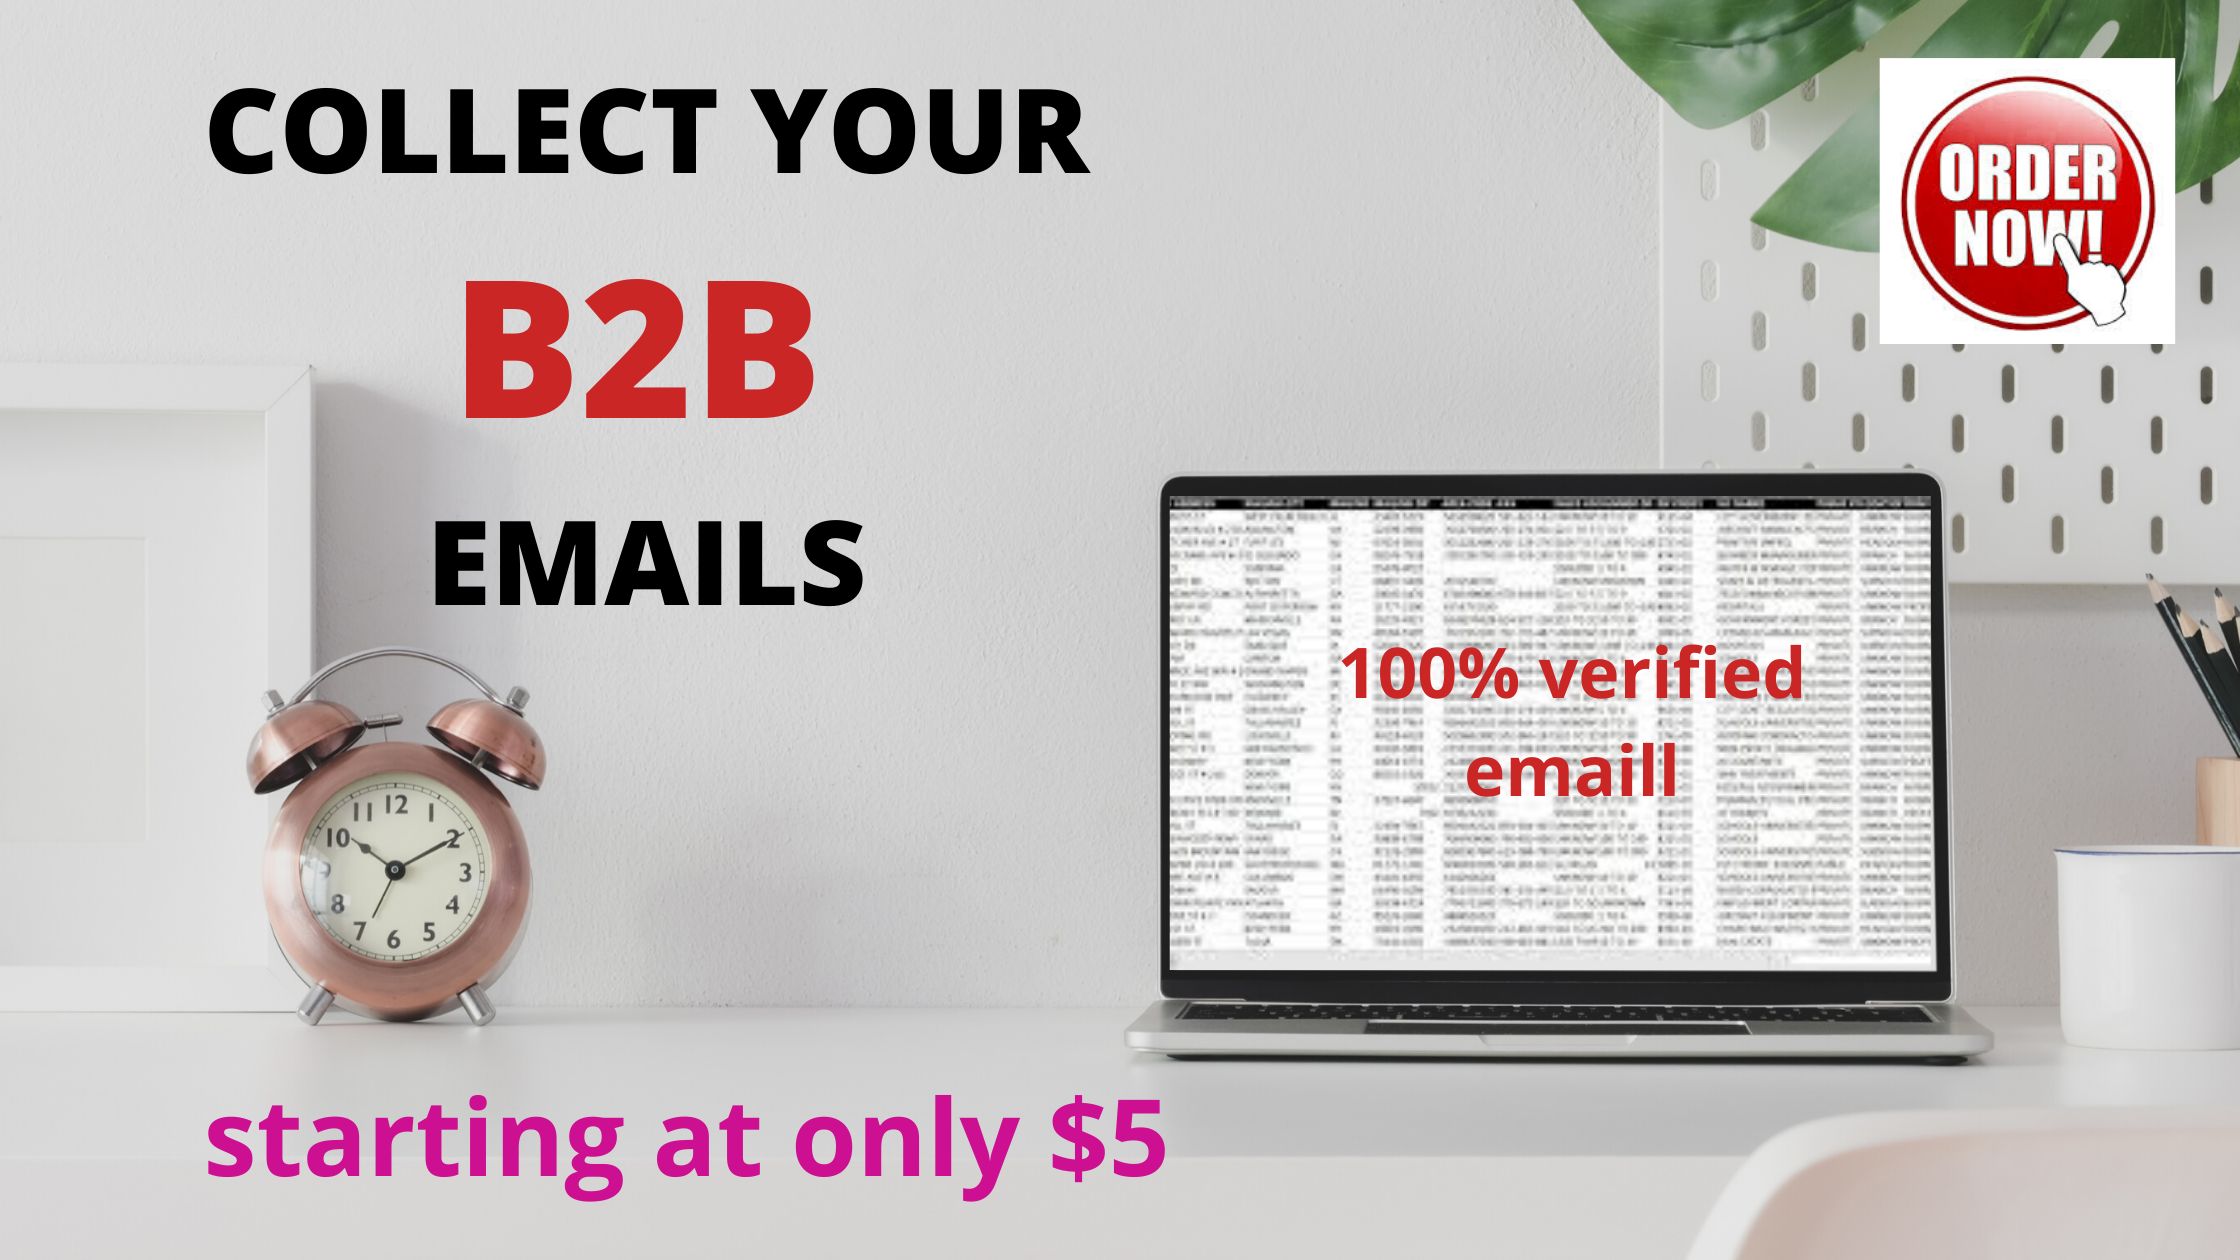 I will find B2B leads for your business